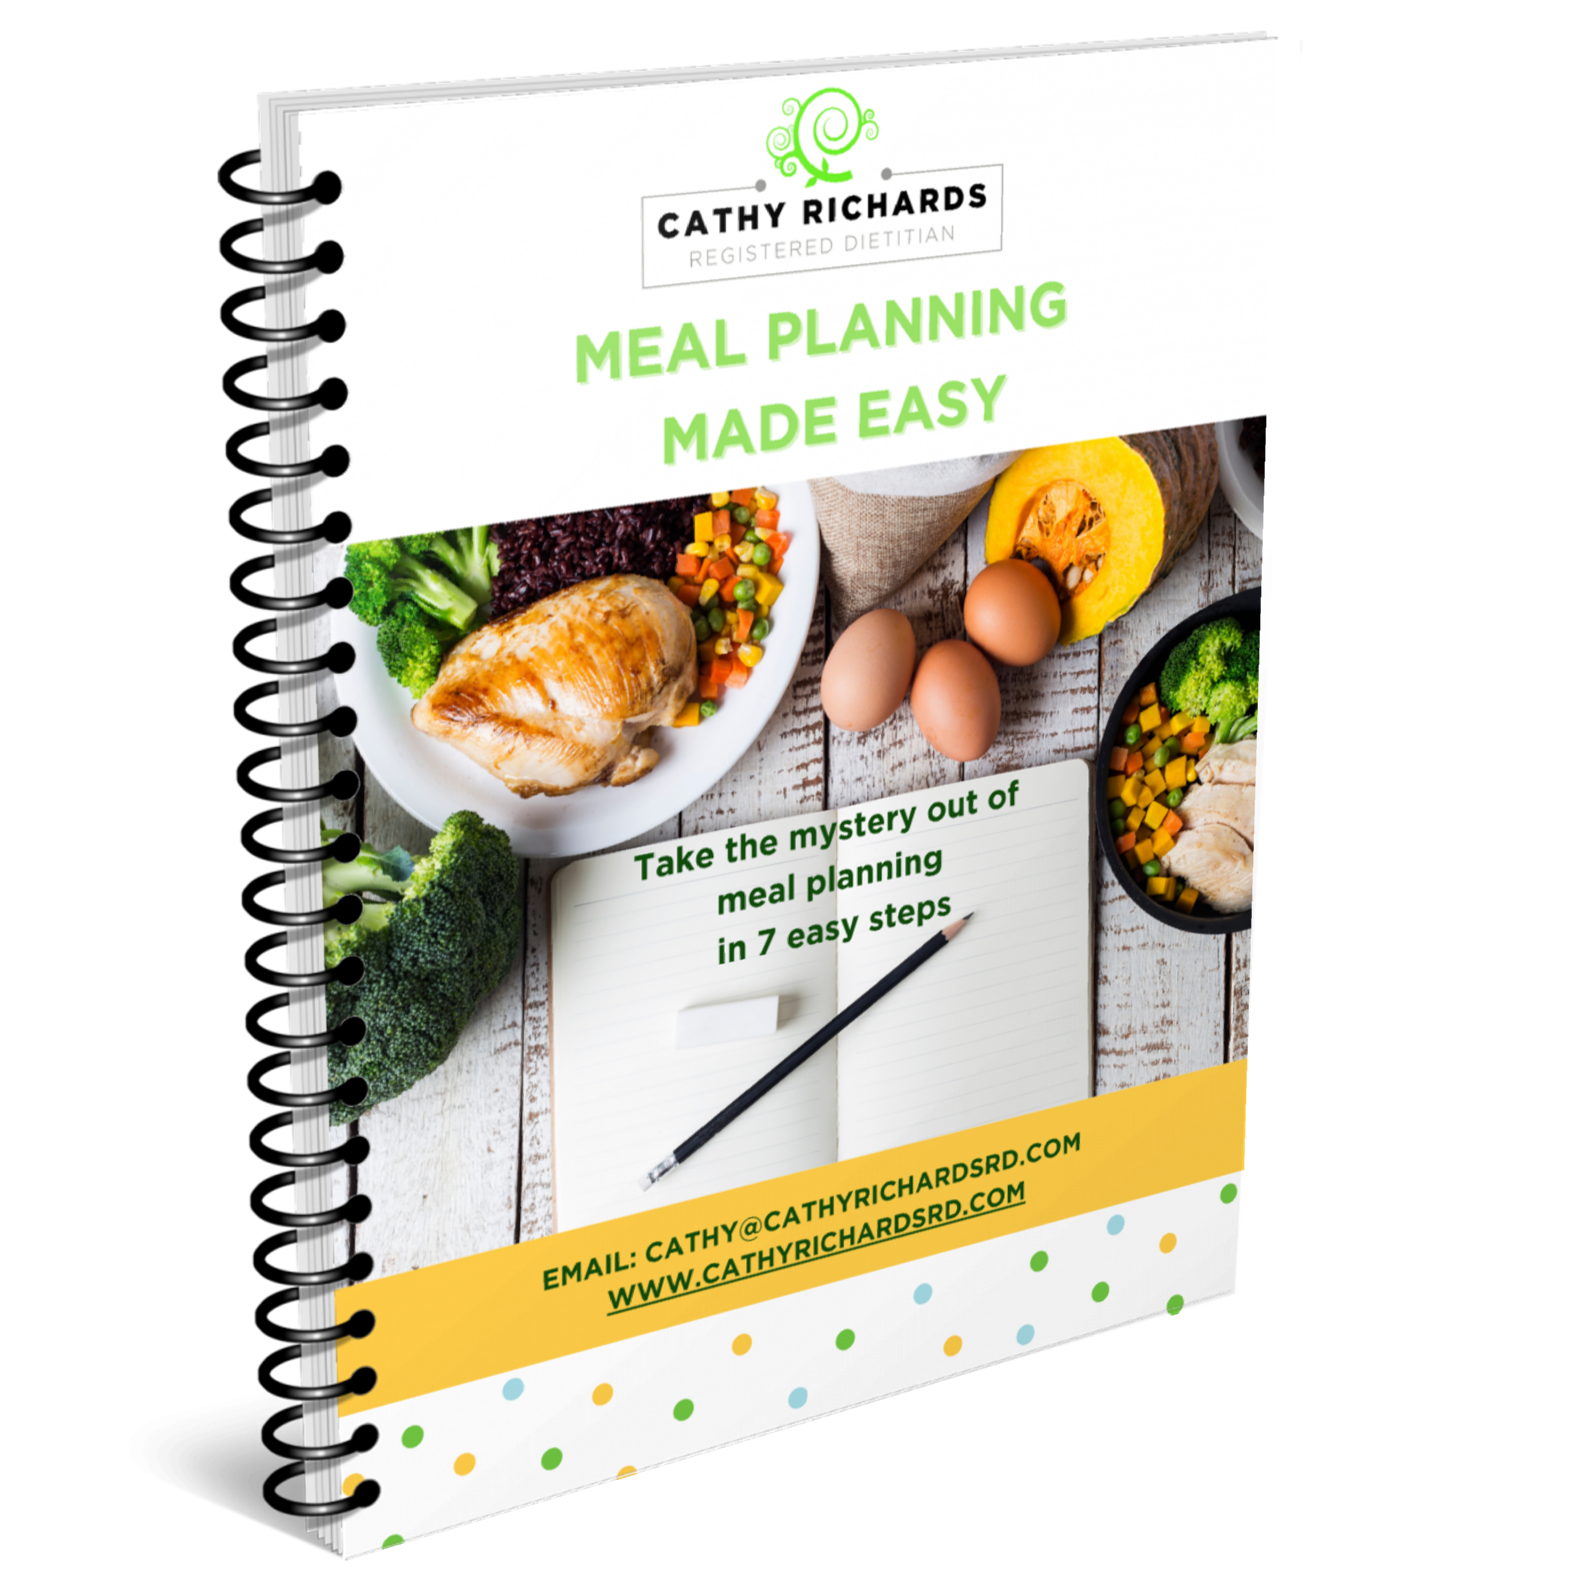 Meal Planning Made Easy Guide Cathyrichardsrd.com